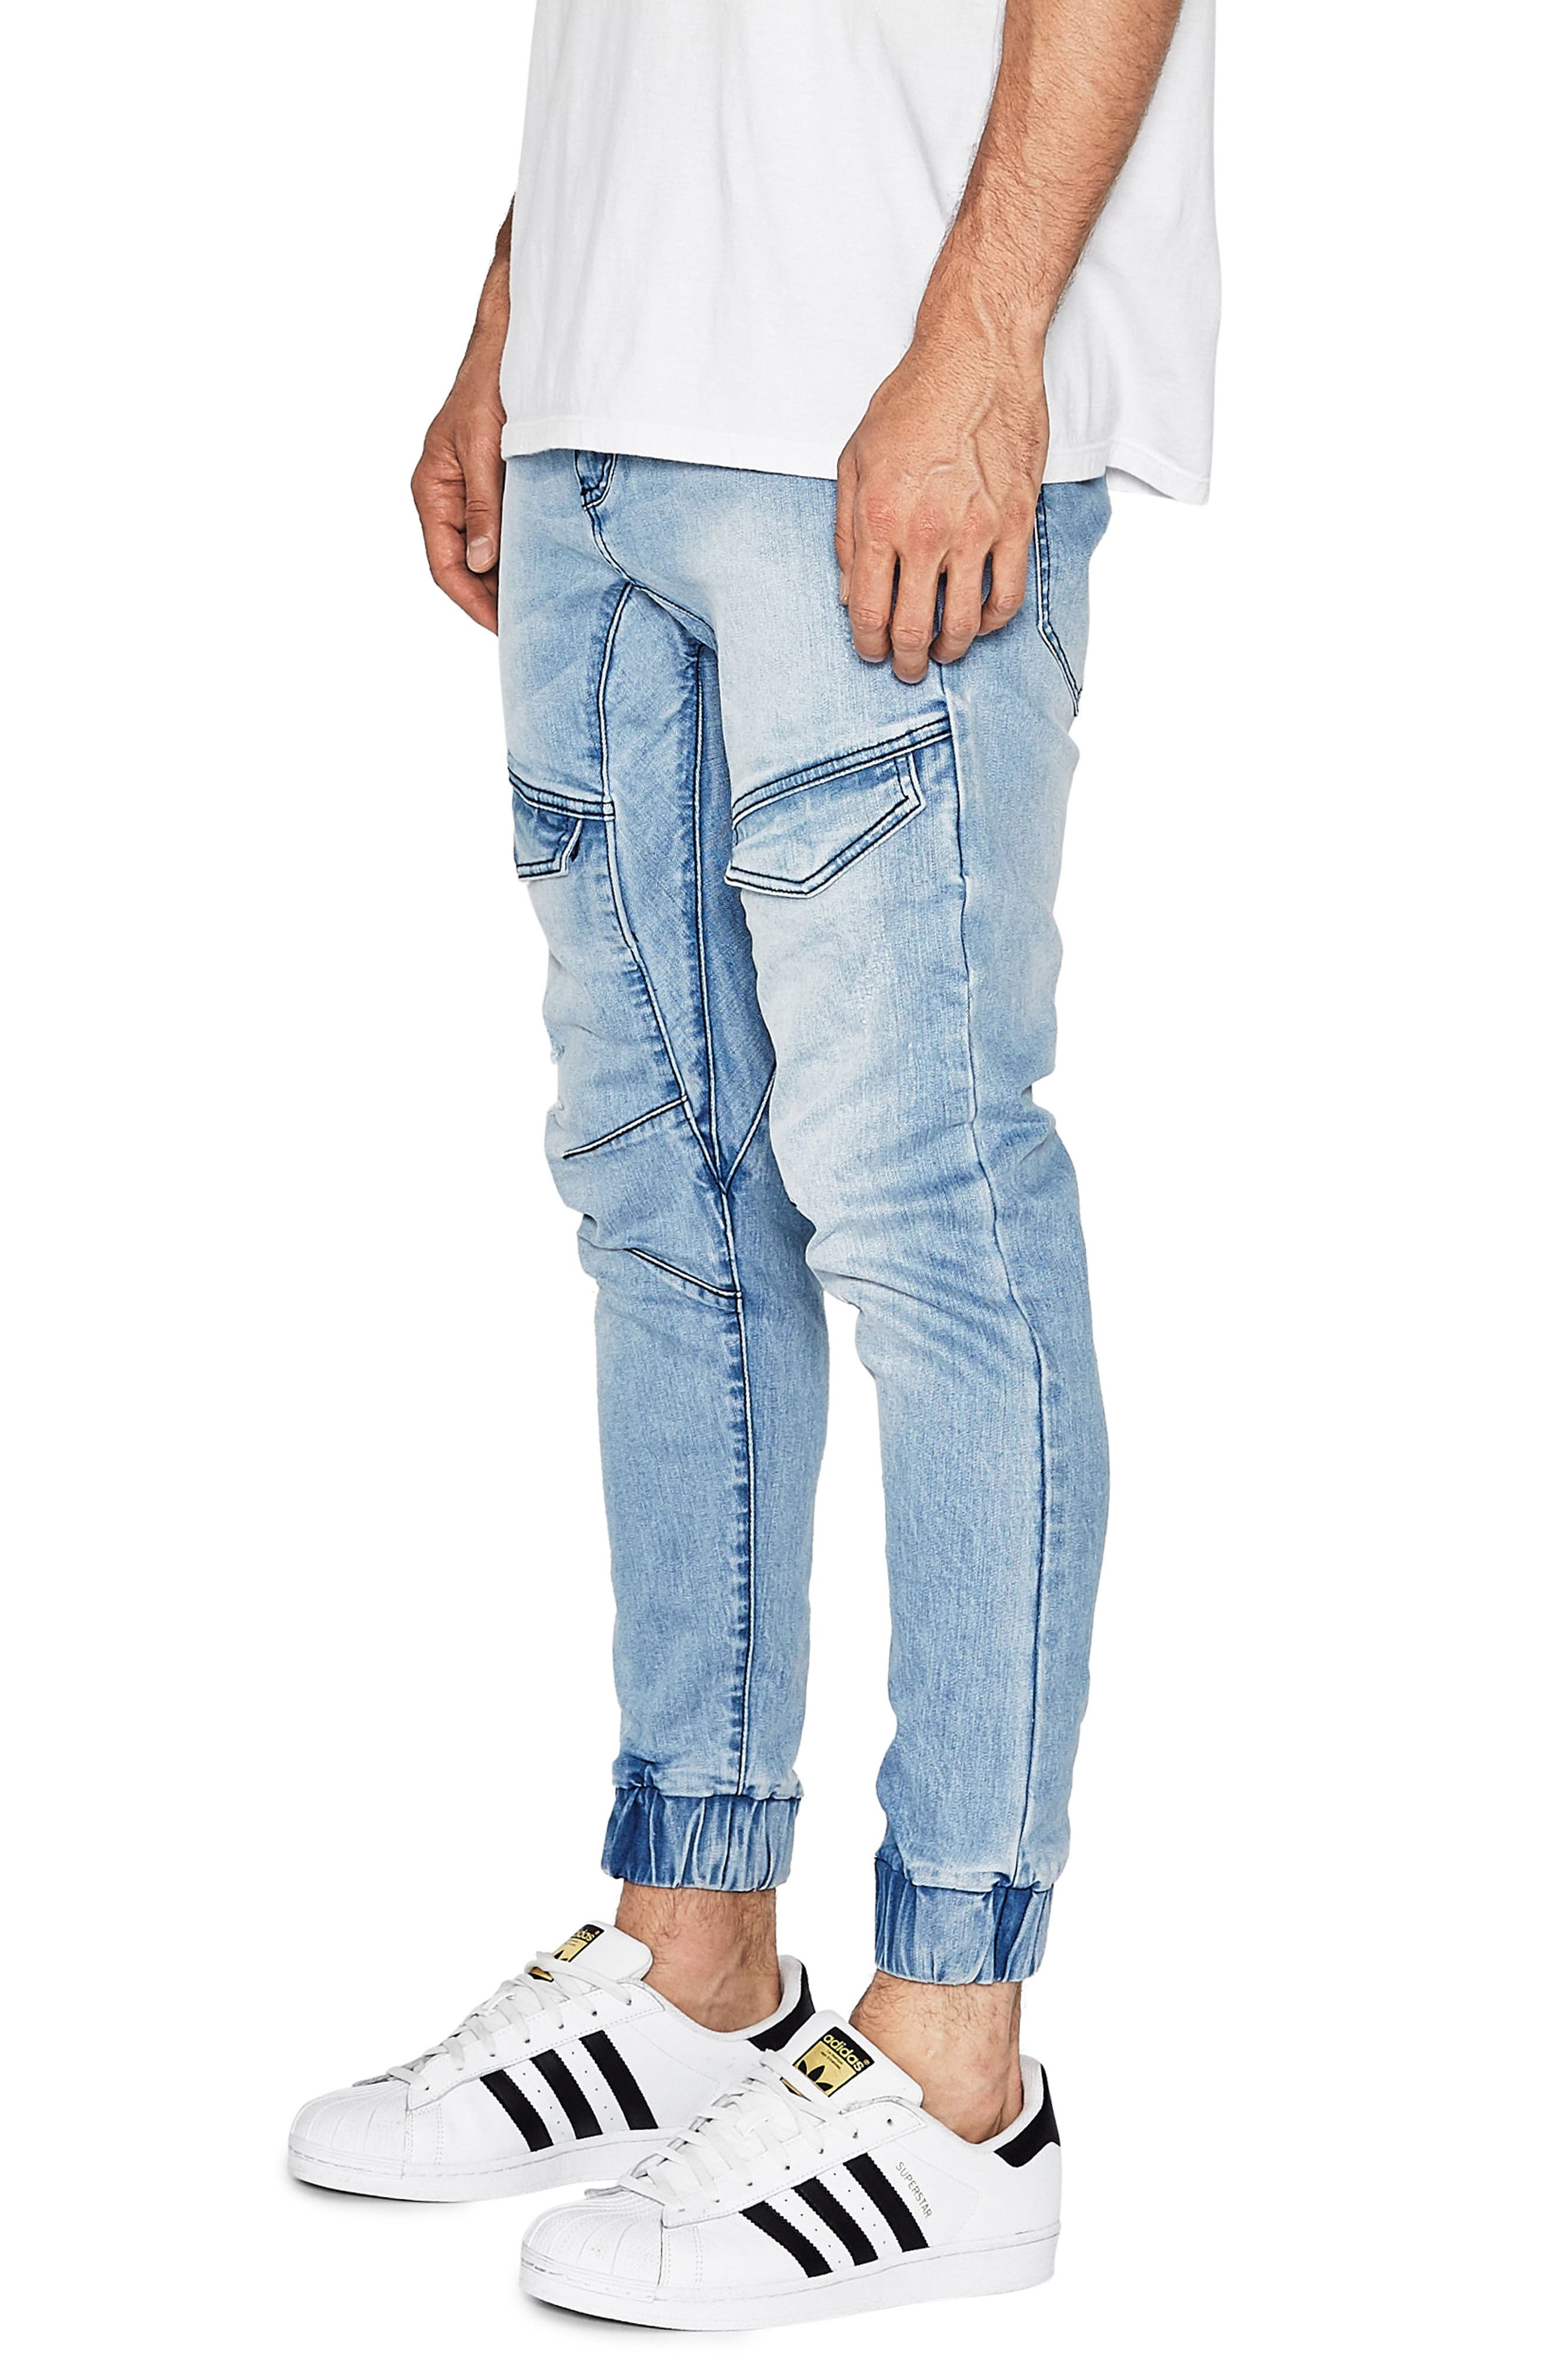 Flight Skinny Denim Jogger Pants,                             Alternate thumbnail 22, color,